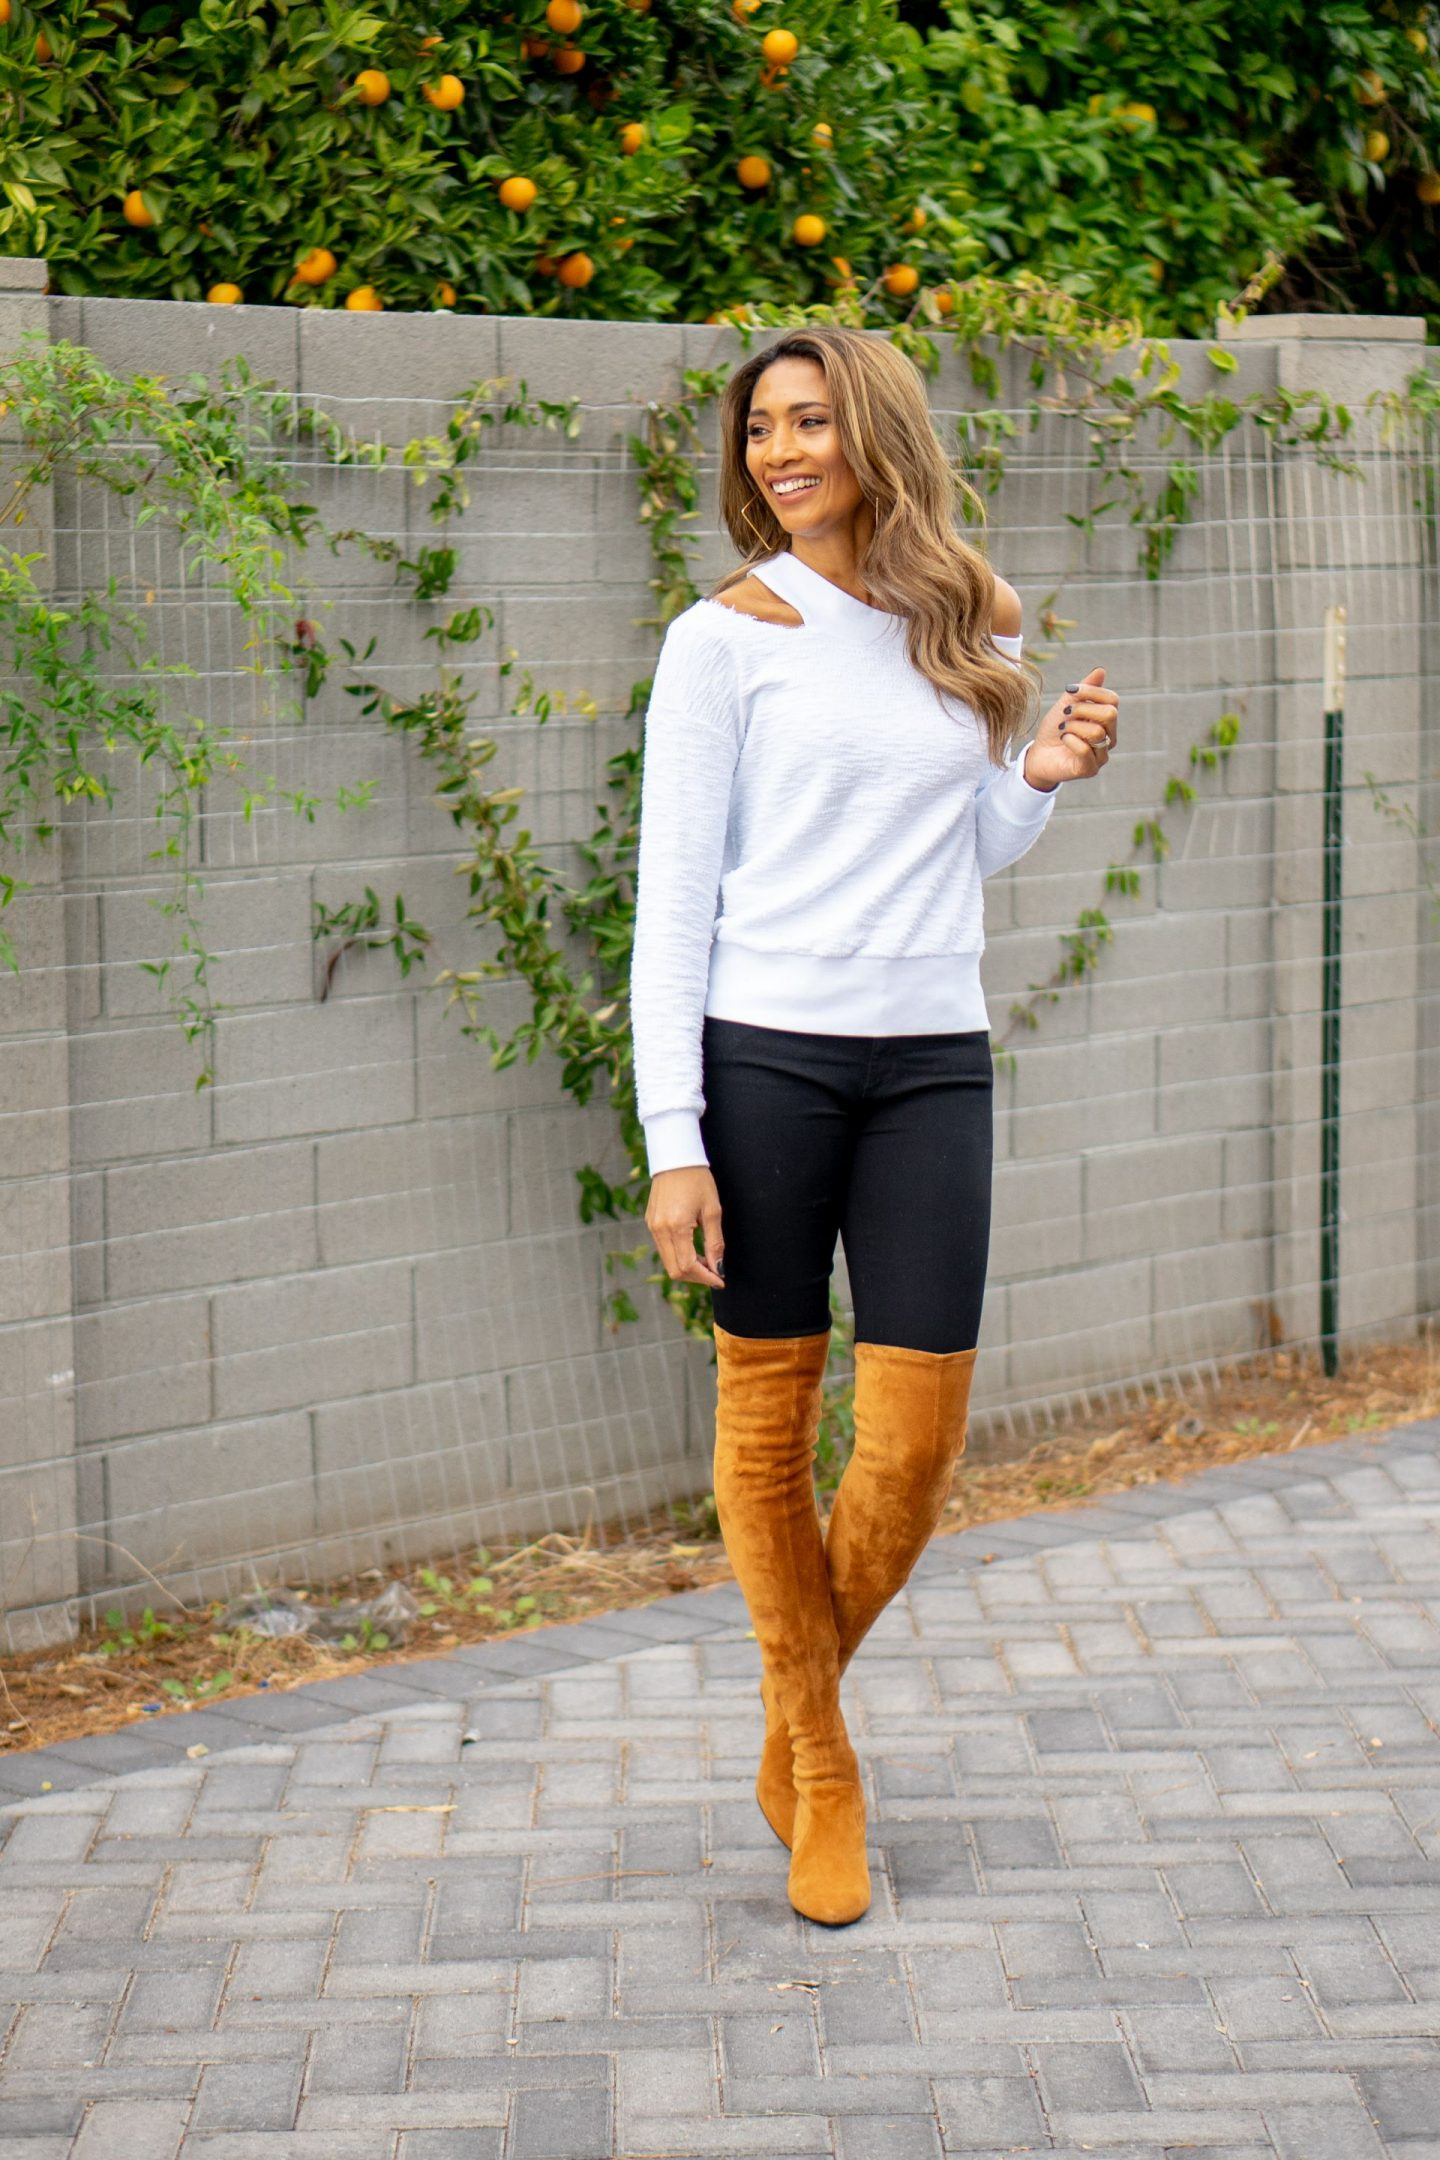 Cutout Sweaters and Boots